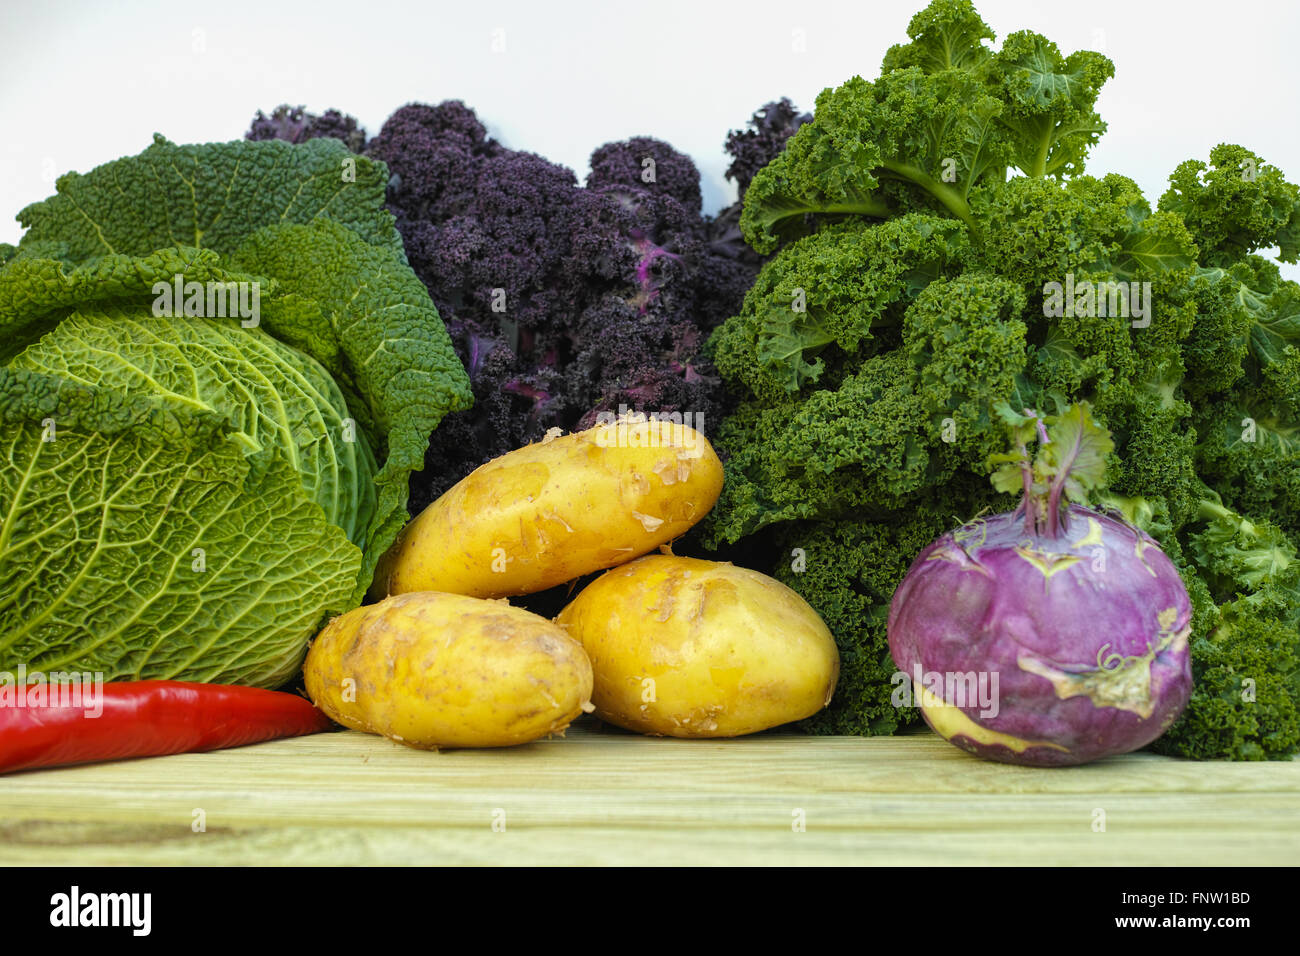 Fresh Organic Vegetables Green Savoy Cabbage Purple And Green Stock Photo Alamy